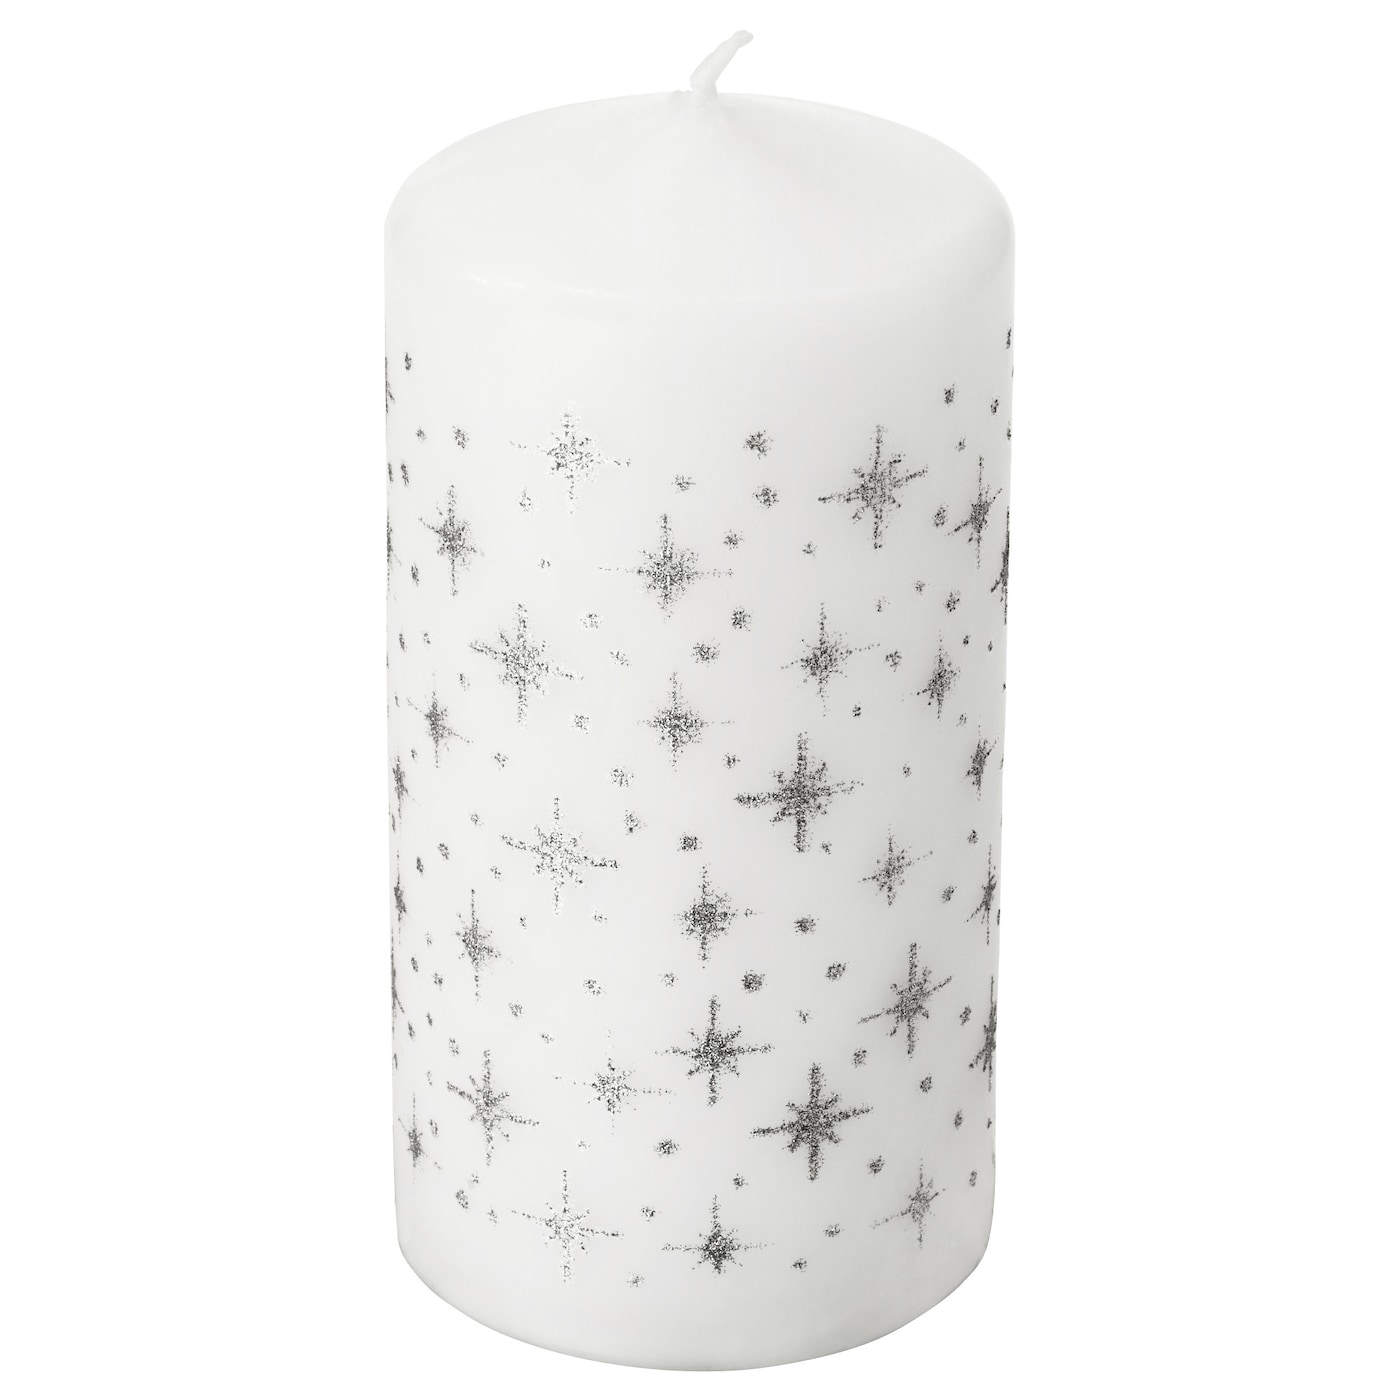 IKEA VINTER 2017 unscented block candle